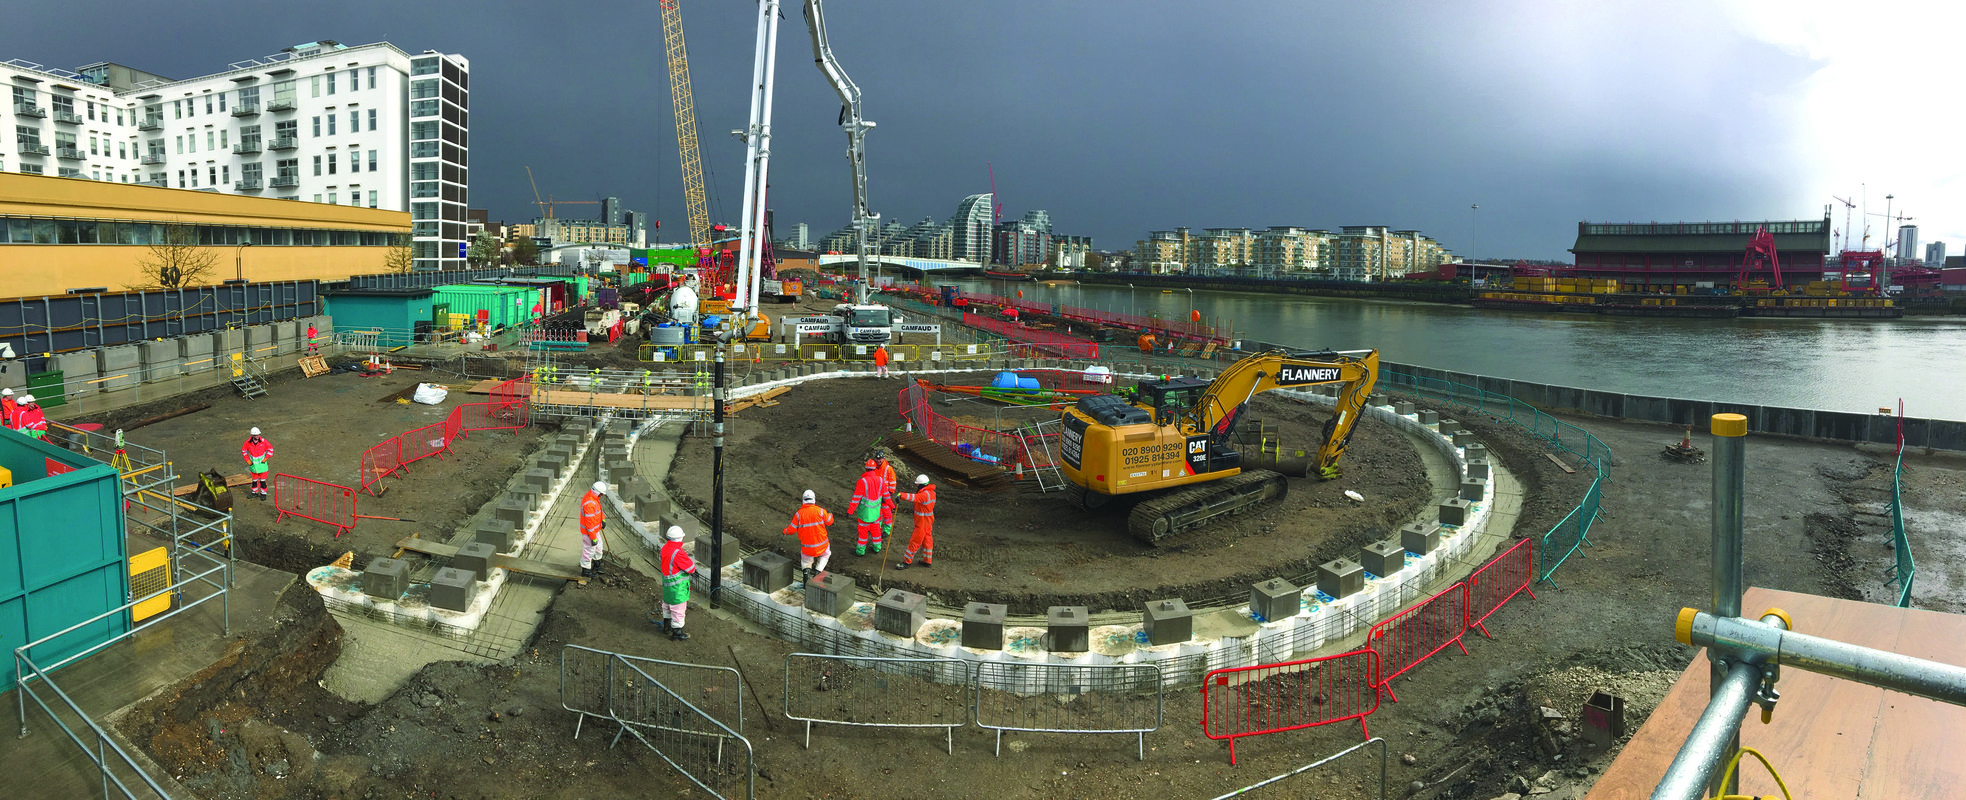 A panoramic view of the Thames Tideway Tunnel, West Section site